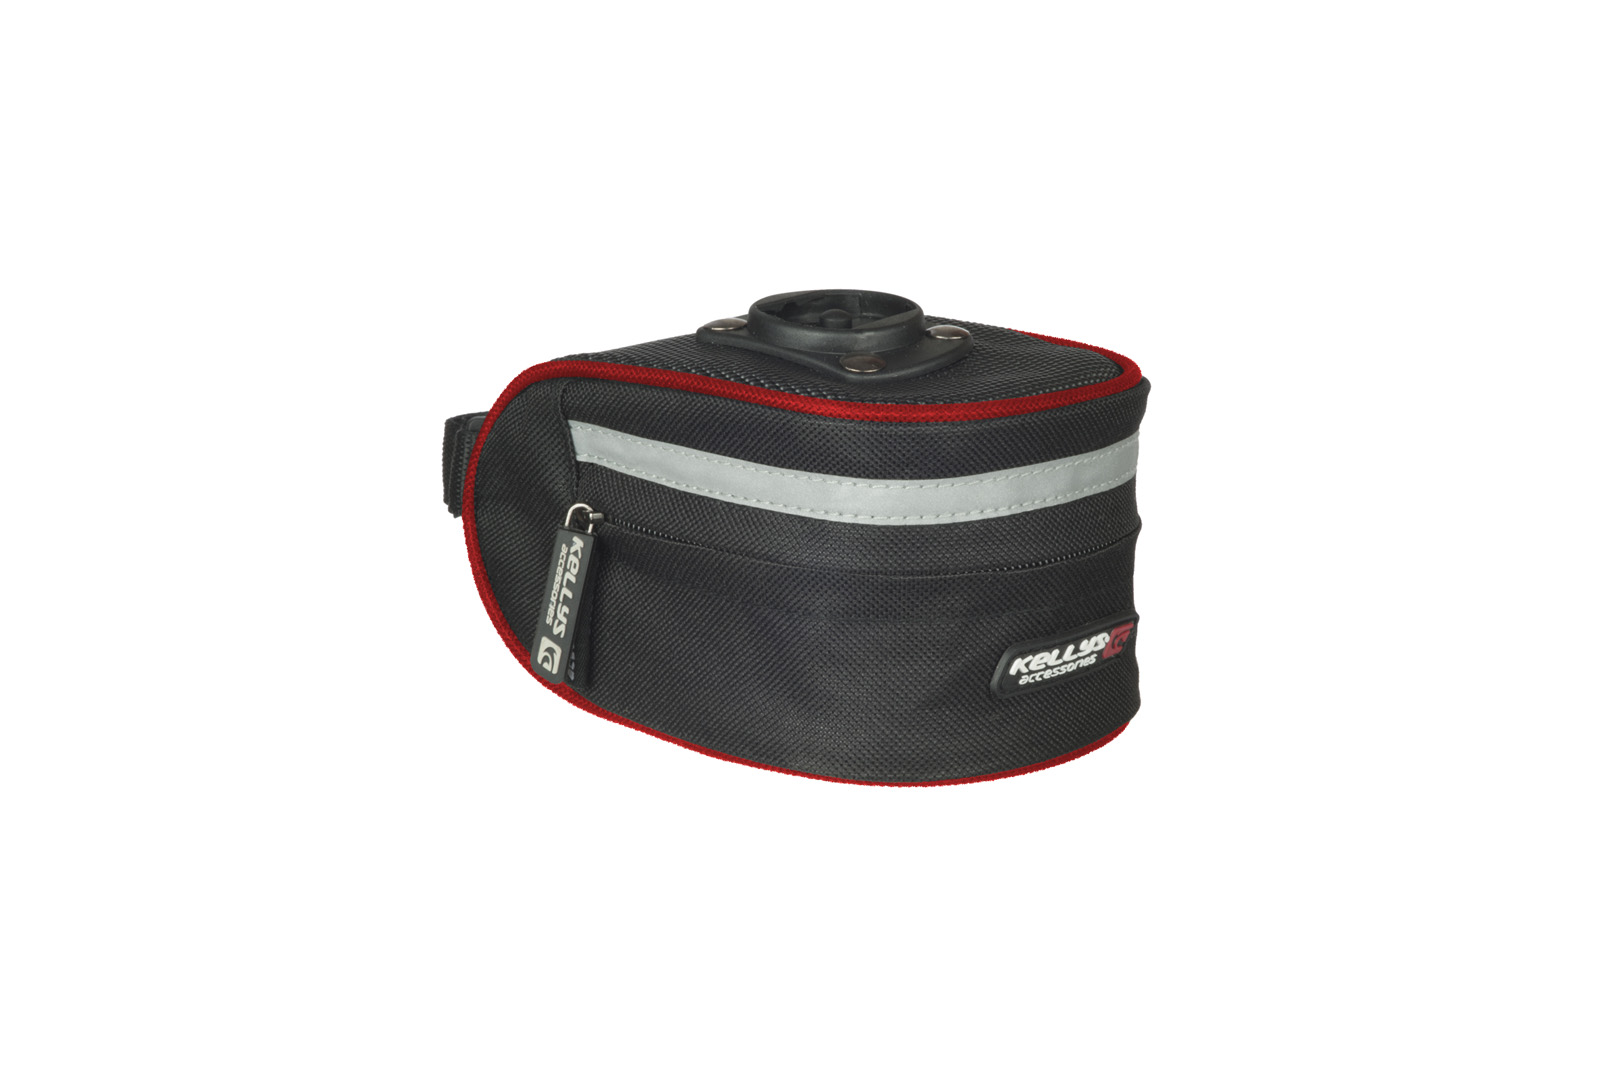 Satteltasche KELLYS HANDY black-red M - Mile-Multisport